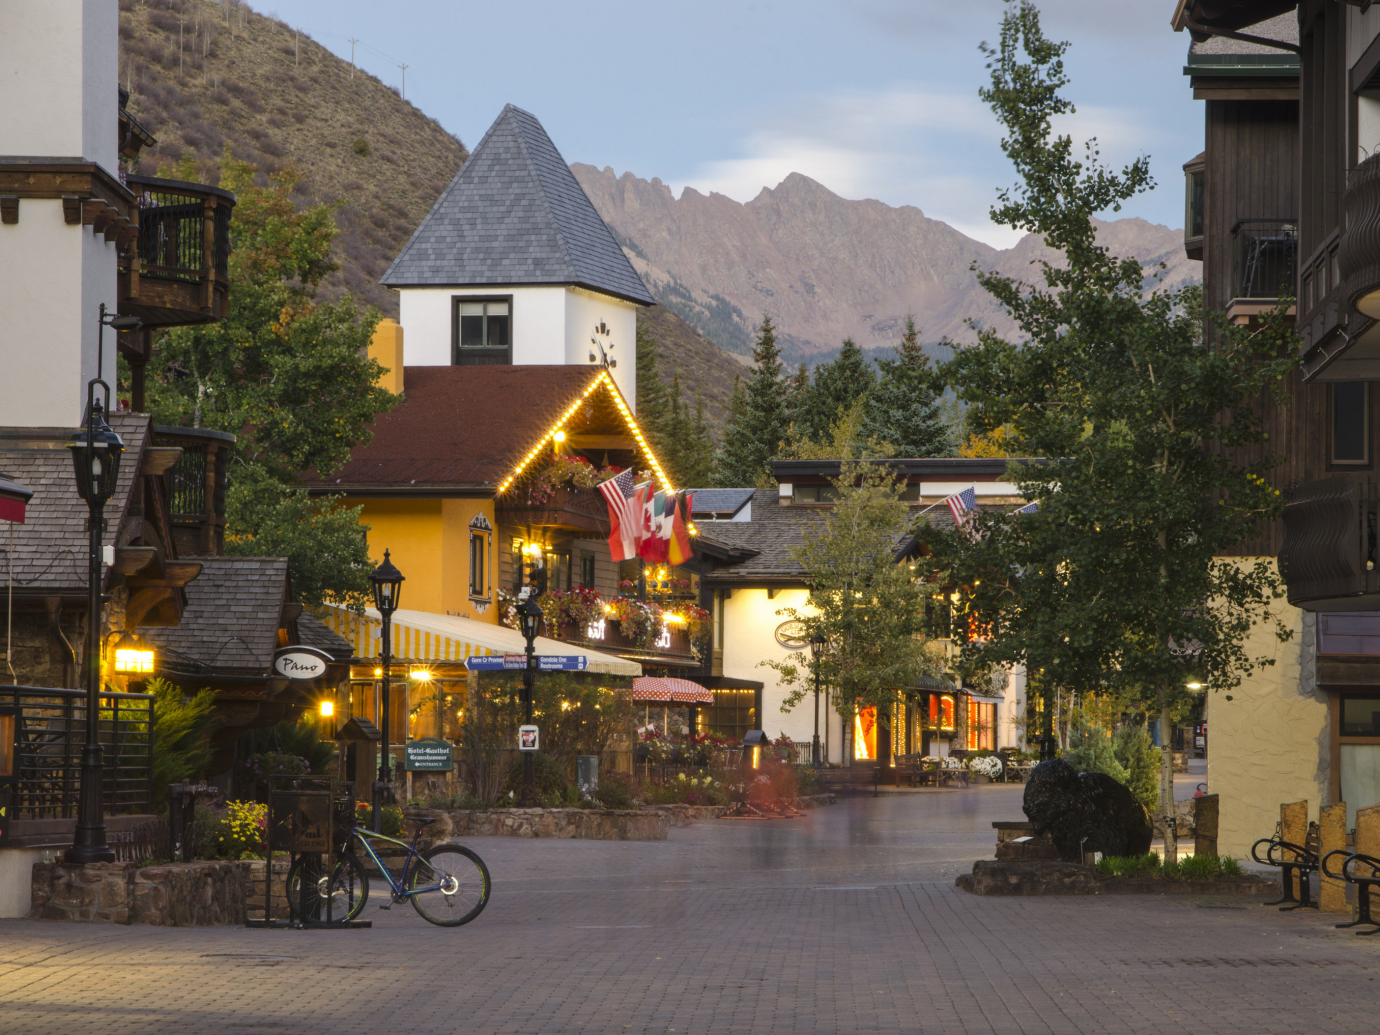 Cute neighborhood with an old timey feel in Vail, Colorado